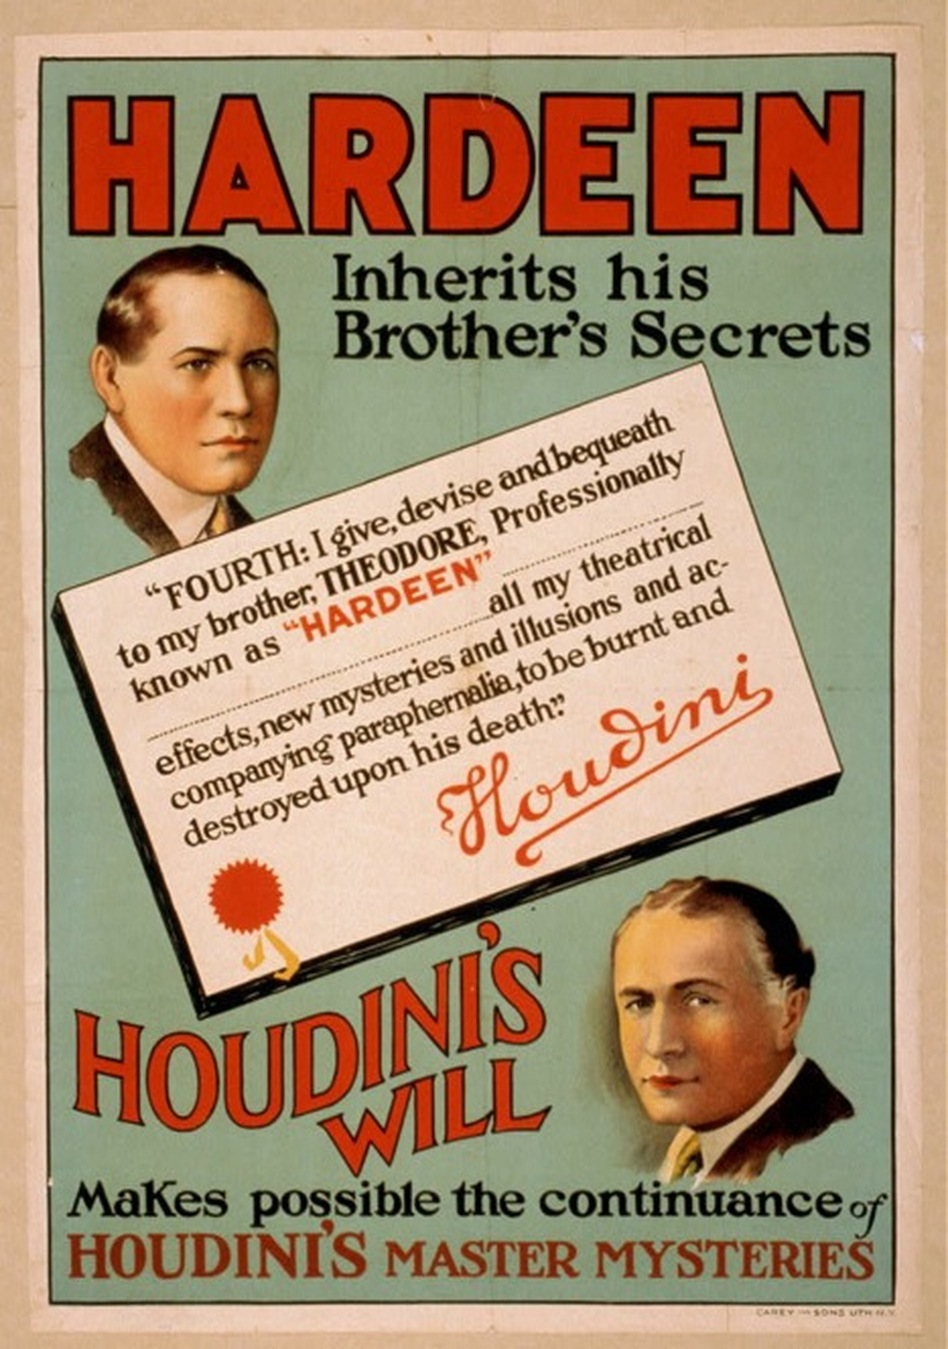 A poster from the 1930s declares that Hardeen would inherit his brother's secrets, making possible the continuance of Houdini's master mysteries after his death in 1926.  (NPR)